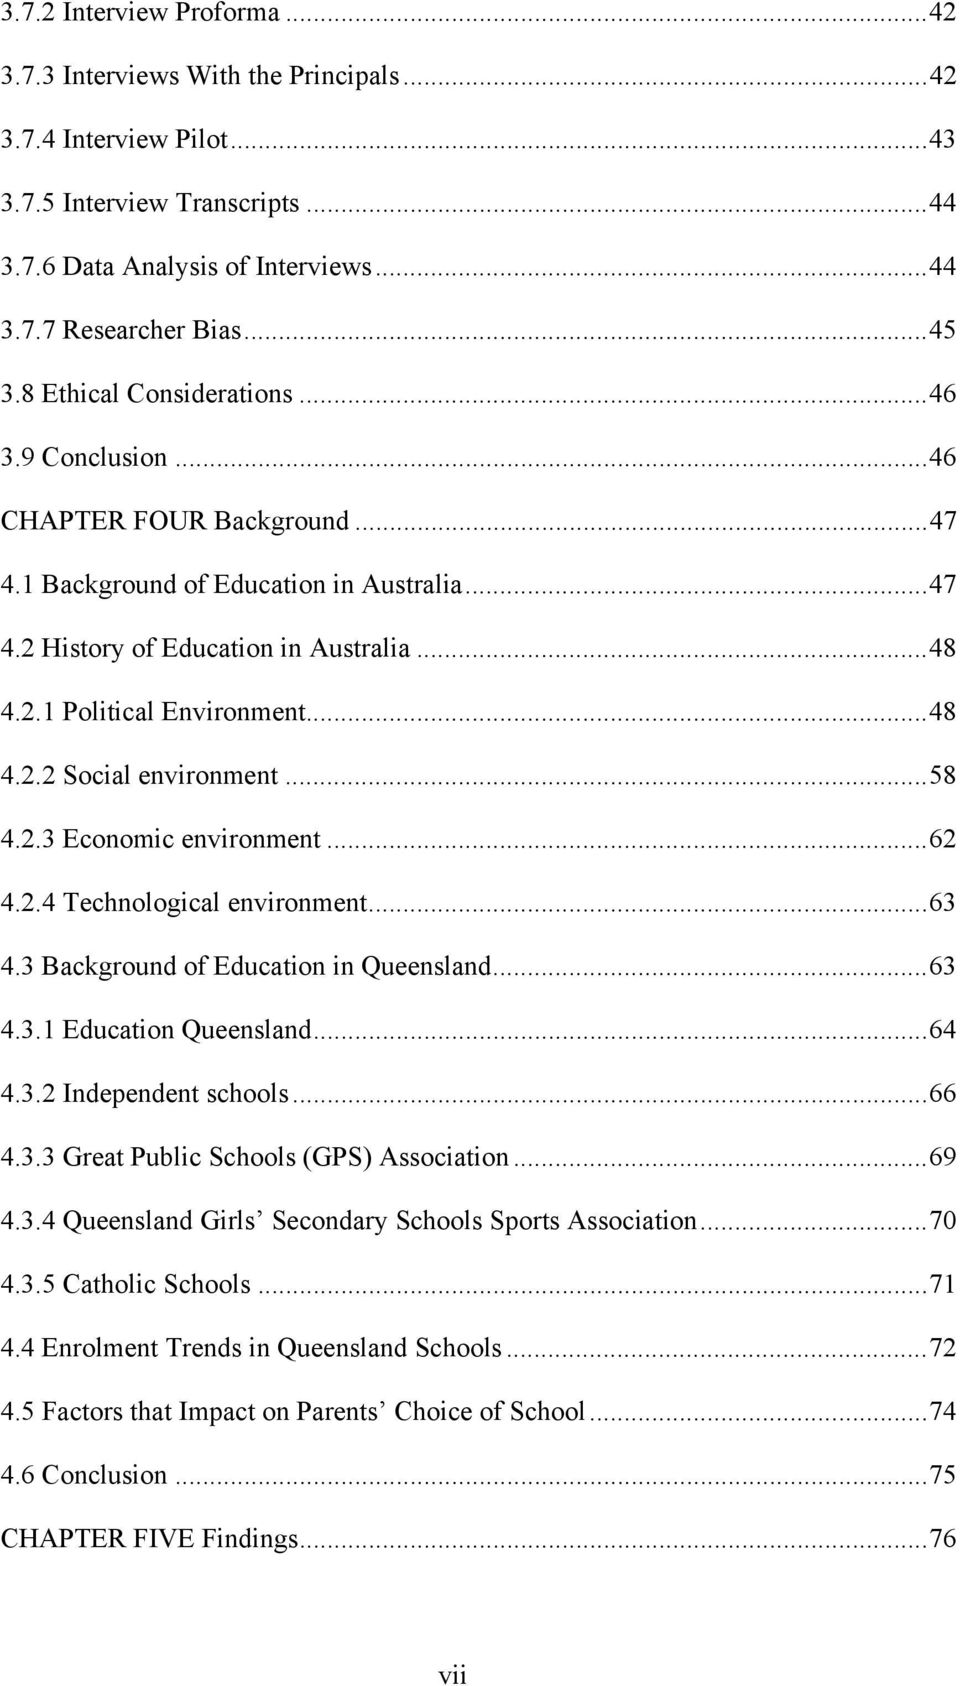 .. 48 4.2.2 Social environment... 58 4.2.3 Economic environment... 62 4.2.4 Technological environment... 63 4.3 Background of Education in Queensland... 63 4.3.1 Education Queensland... 64 4.3.2 Independent schools.